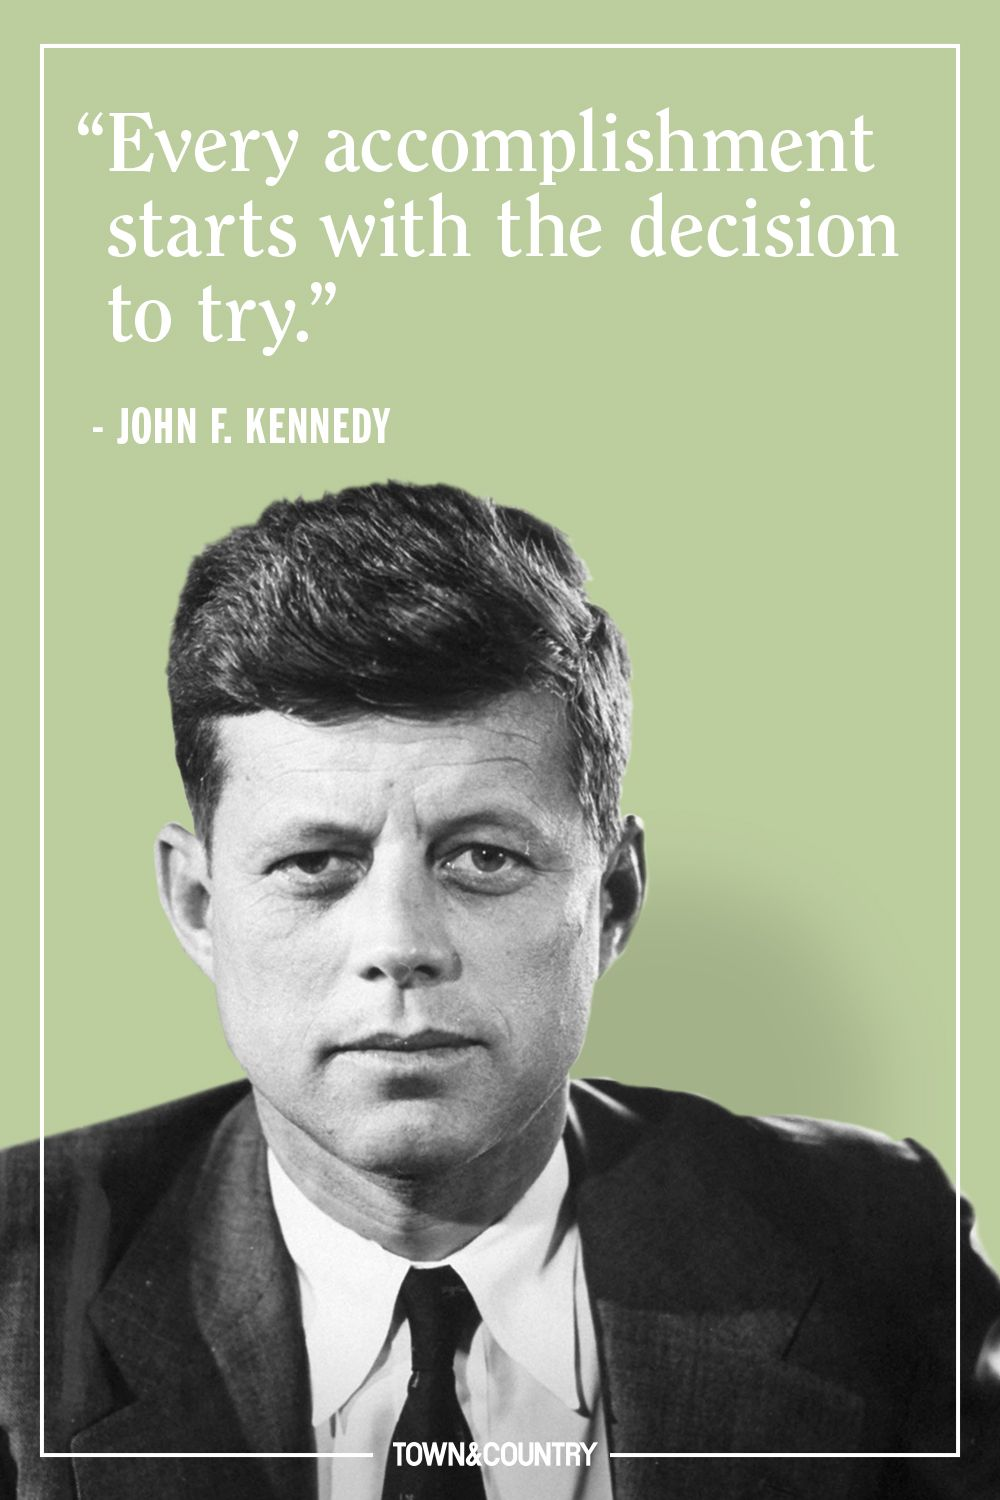 John F Kennedy Quotes 12 Best JFK Quotes Of All Time   Famous John F. Kennedy Quotes John F Kennedy Quotes